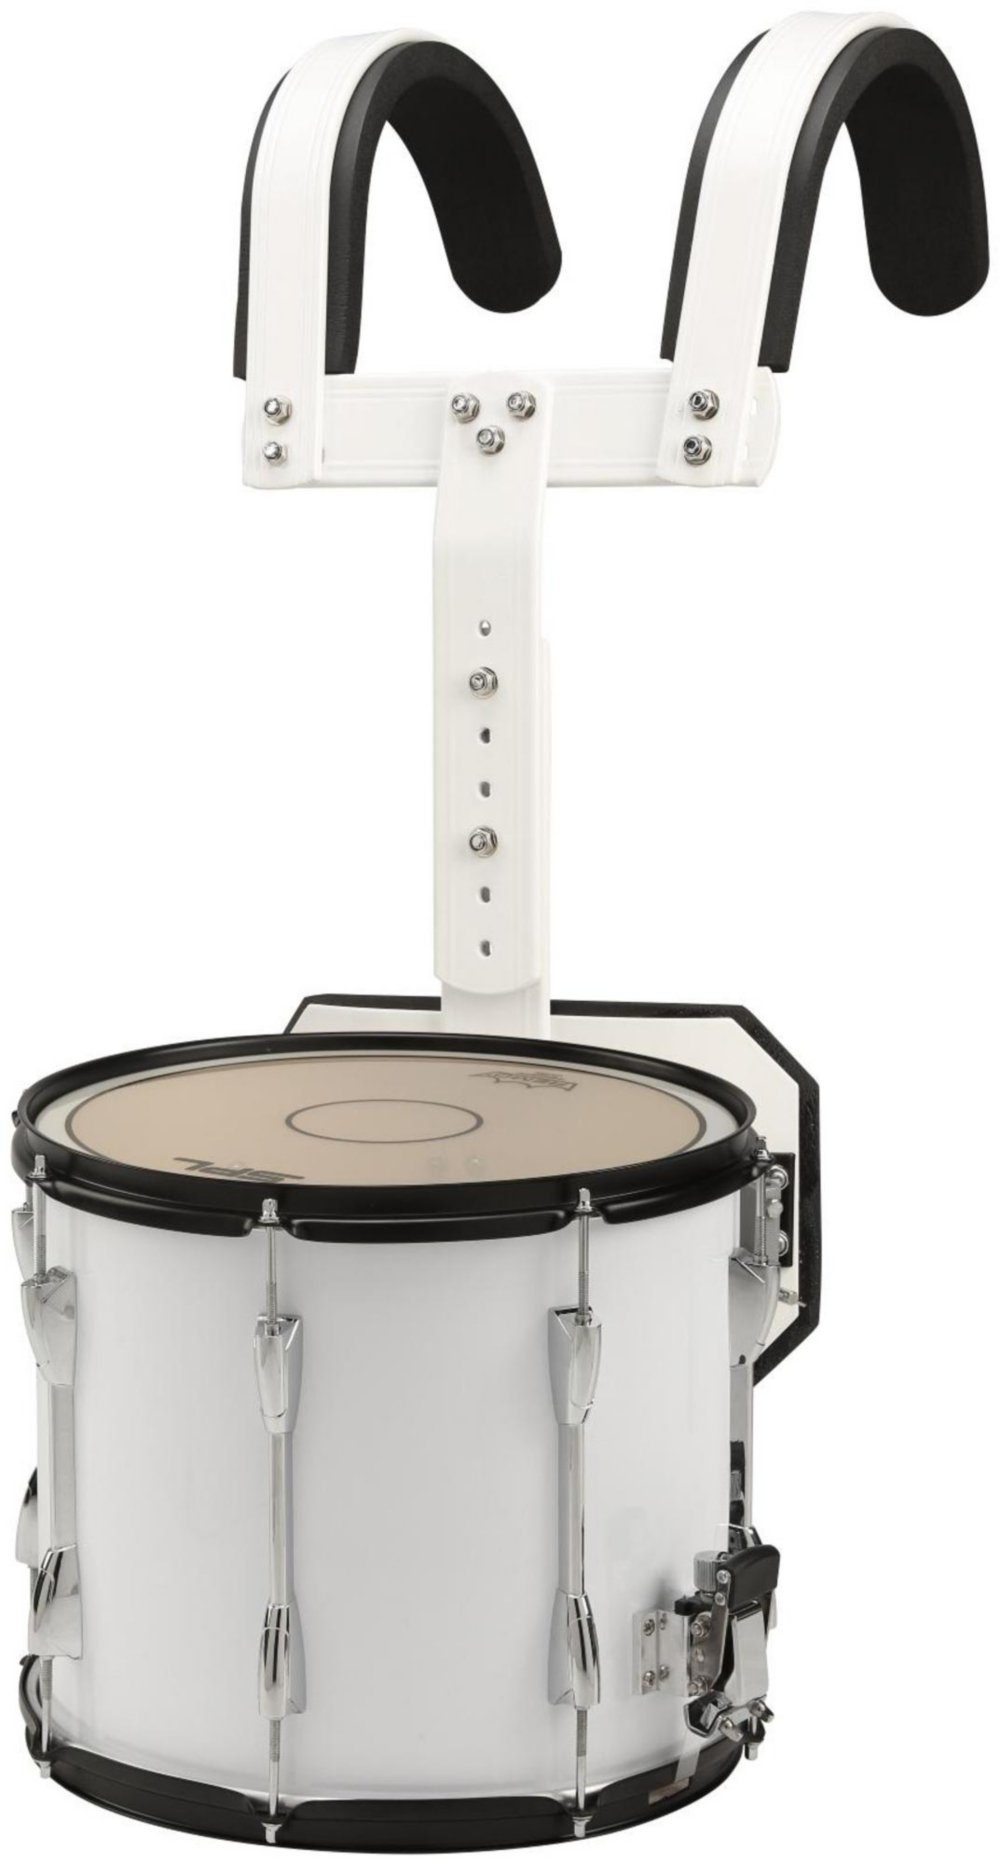 Sound Percussion Labs Marching Snare Drum with Carrier 14 x 12 White by Sound Percussion Labs